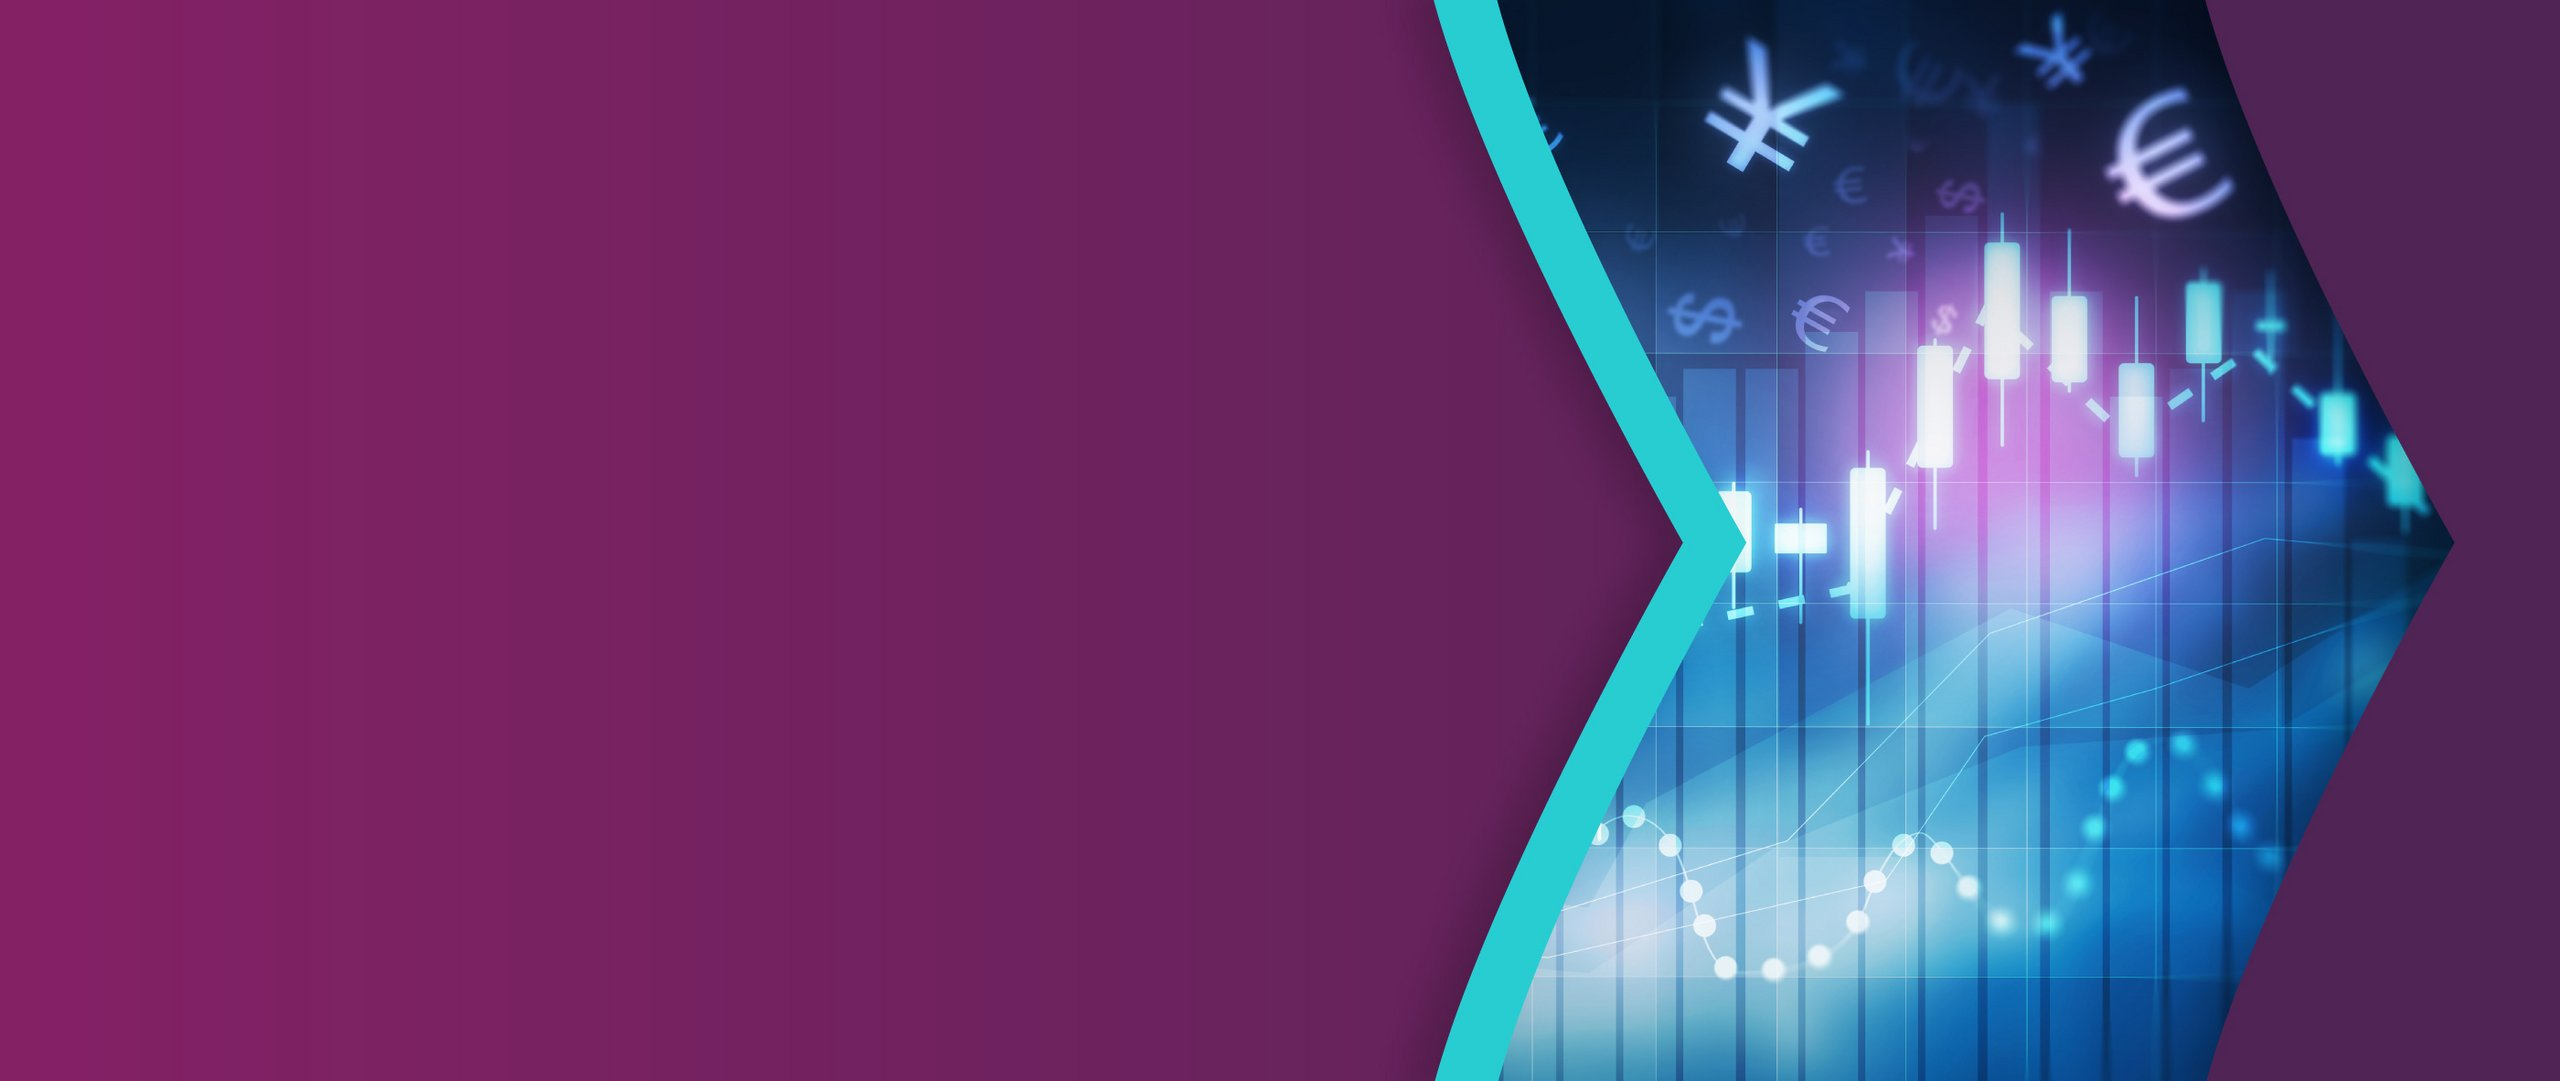 Forex trade chart, designed with Skrill purple and teal arrows